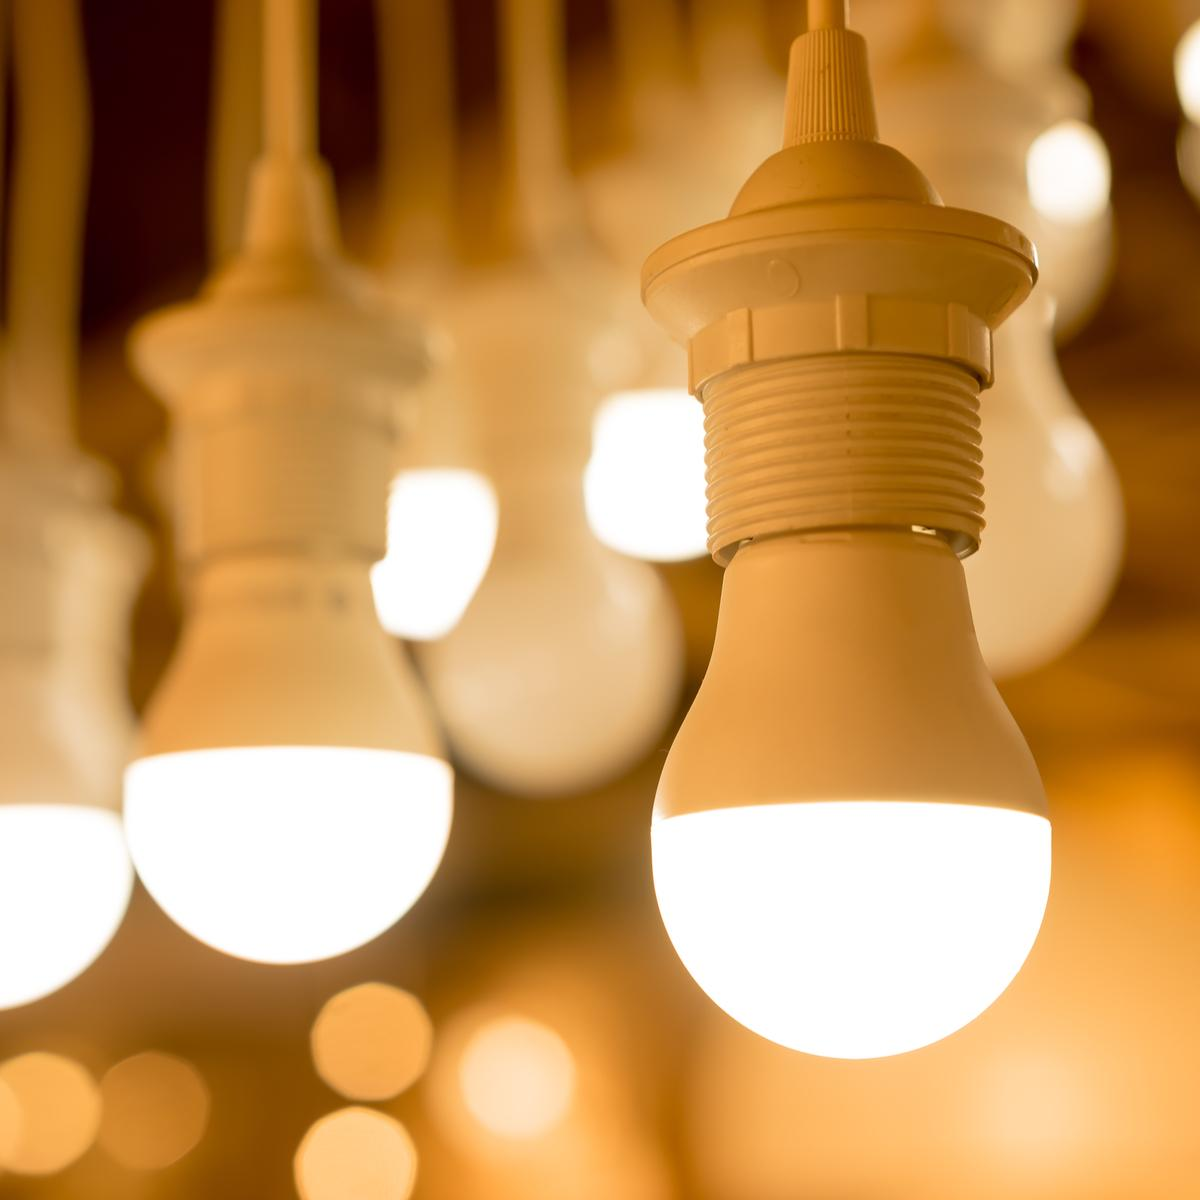 Free LED installation through a partnership of Ameren Illinois and Assured Insulation Solutions in Decatur, Illinois.